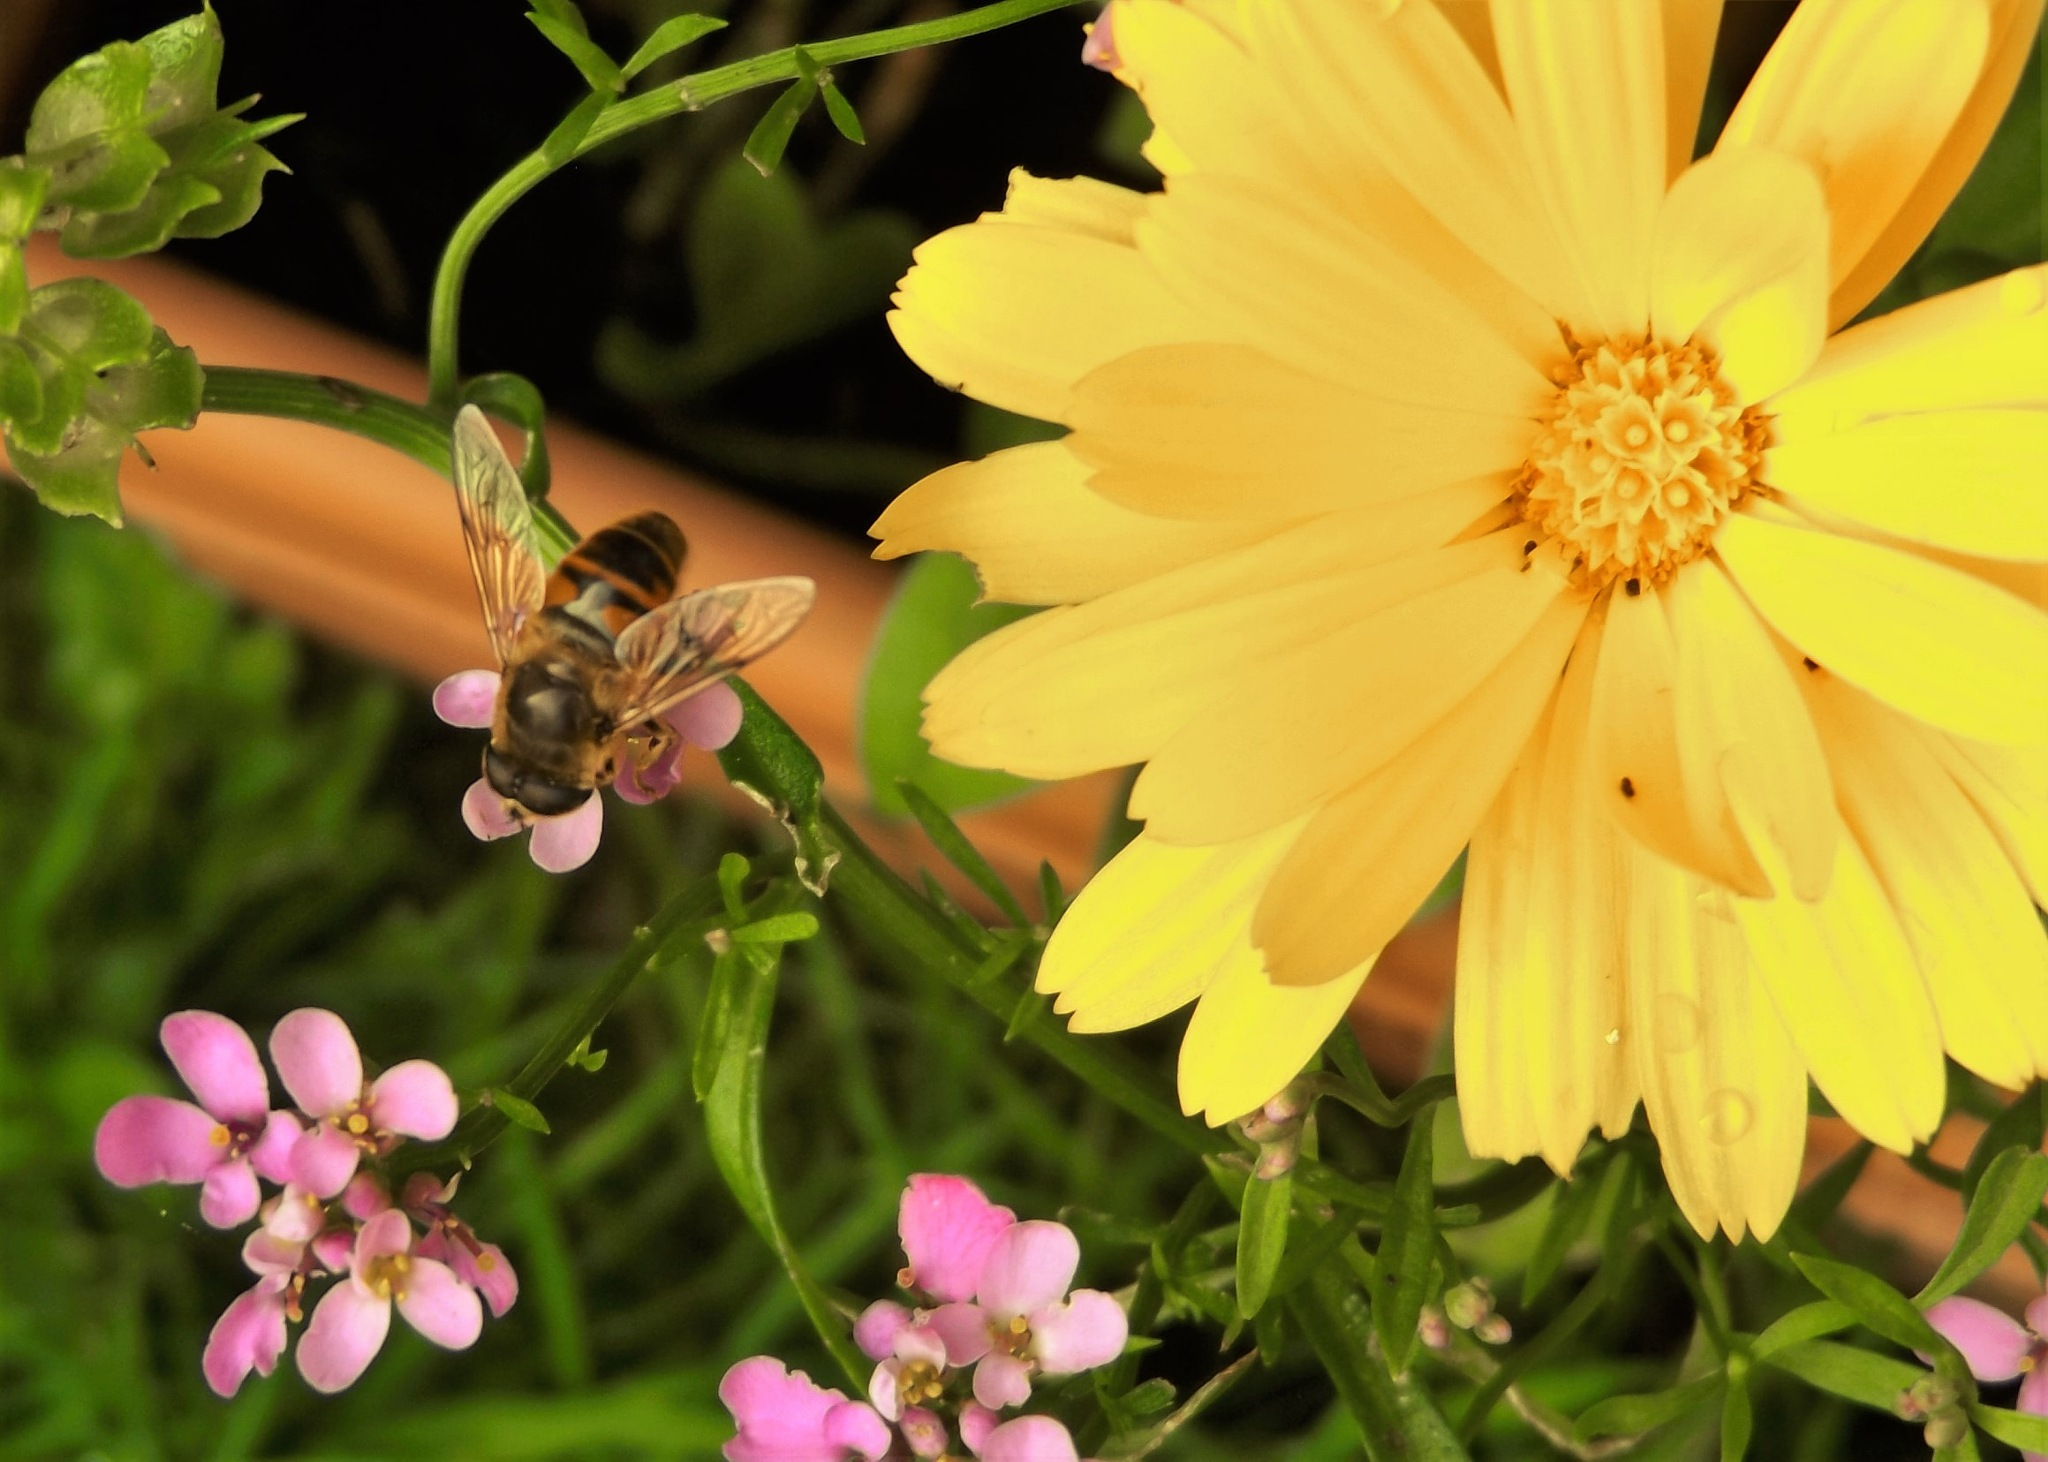 Flower and bee by Tracey Batchelor